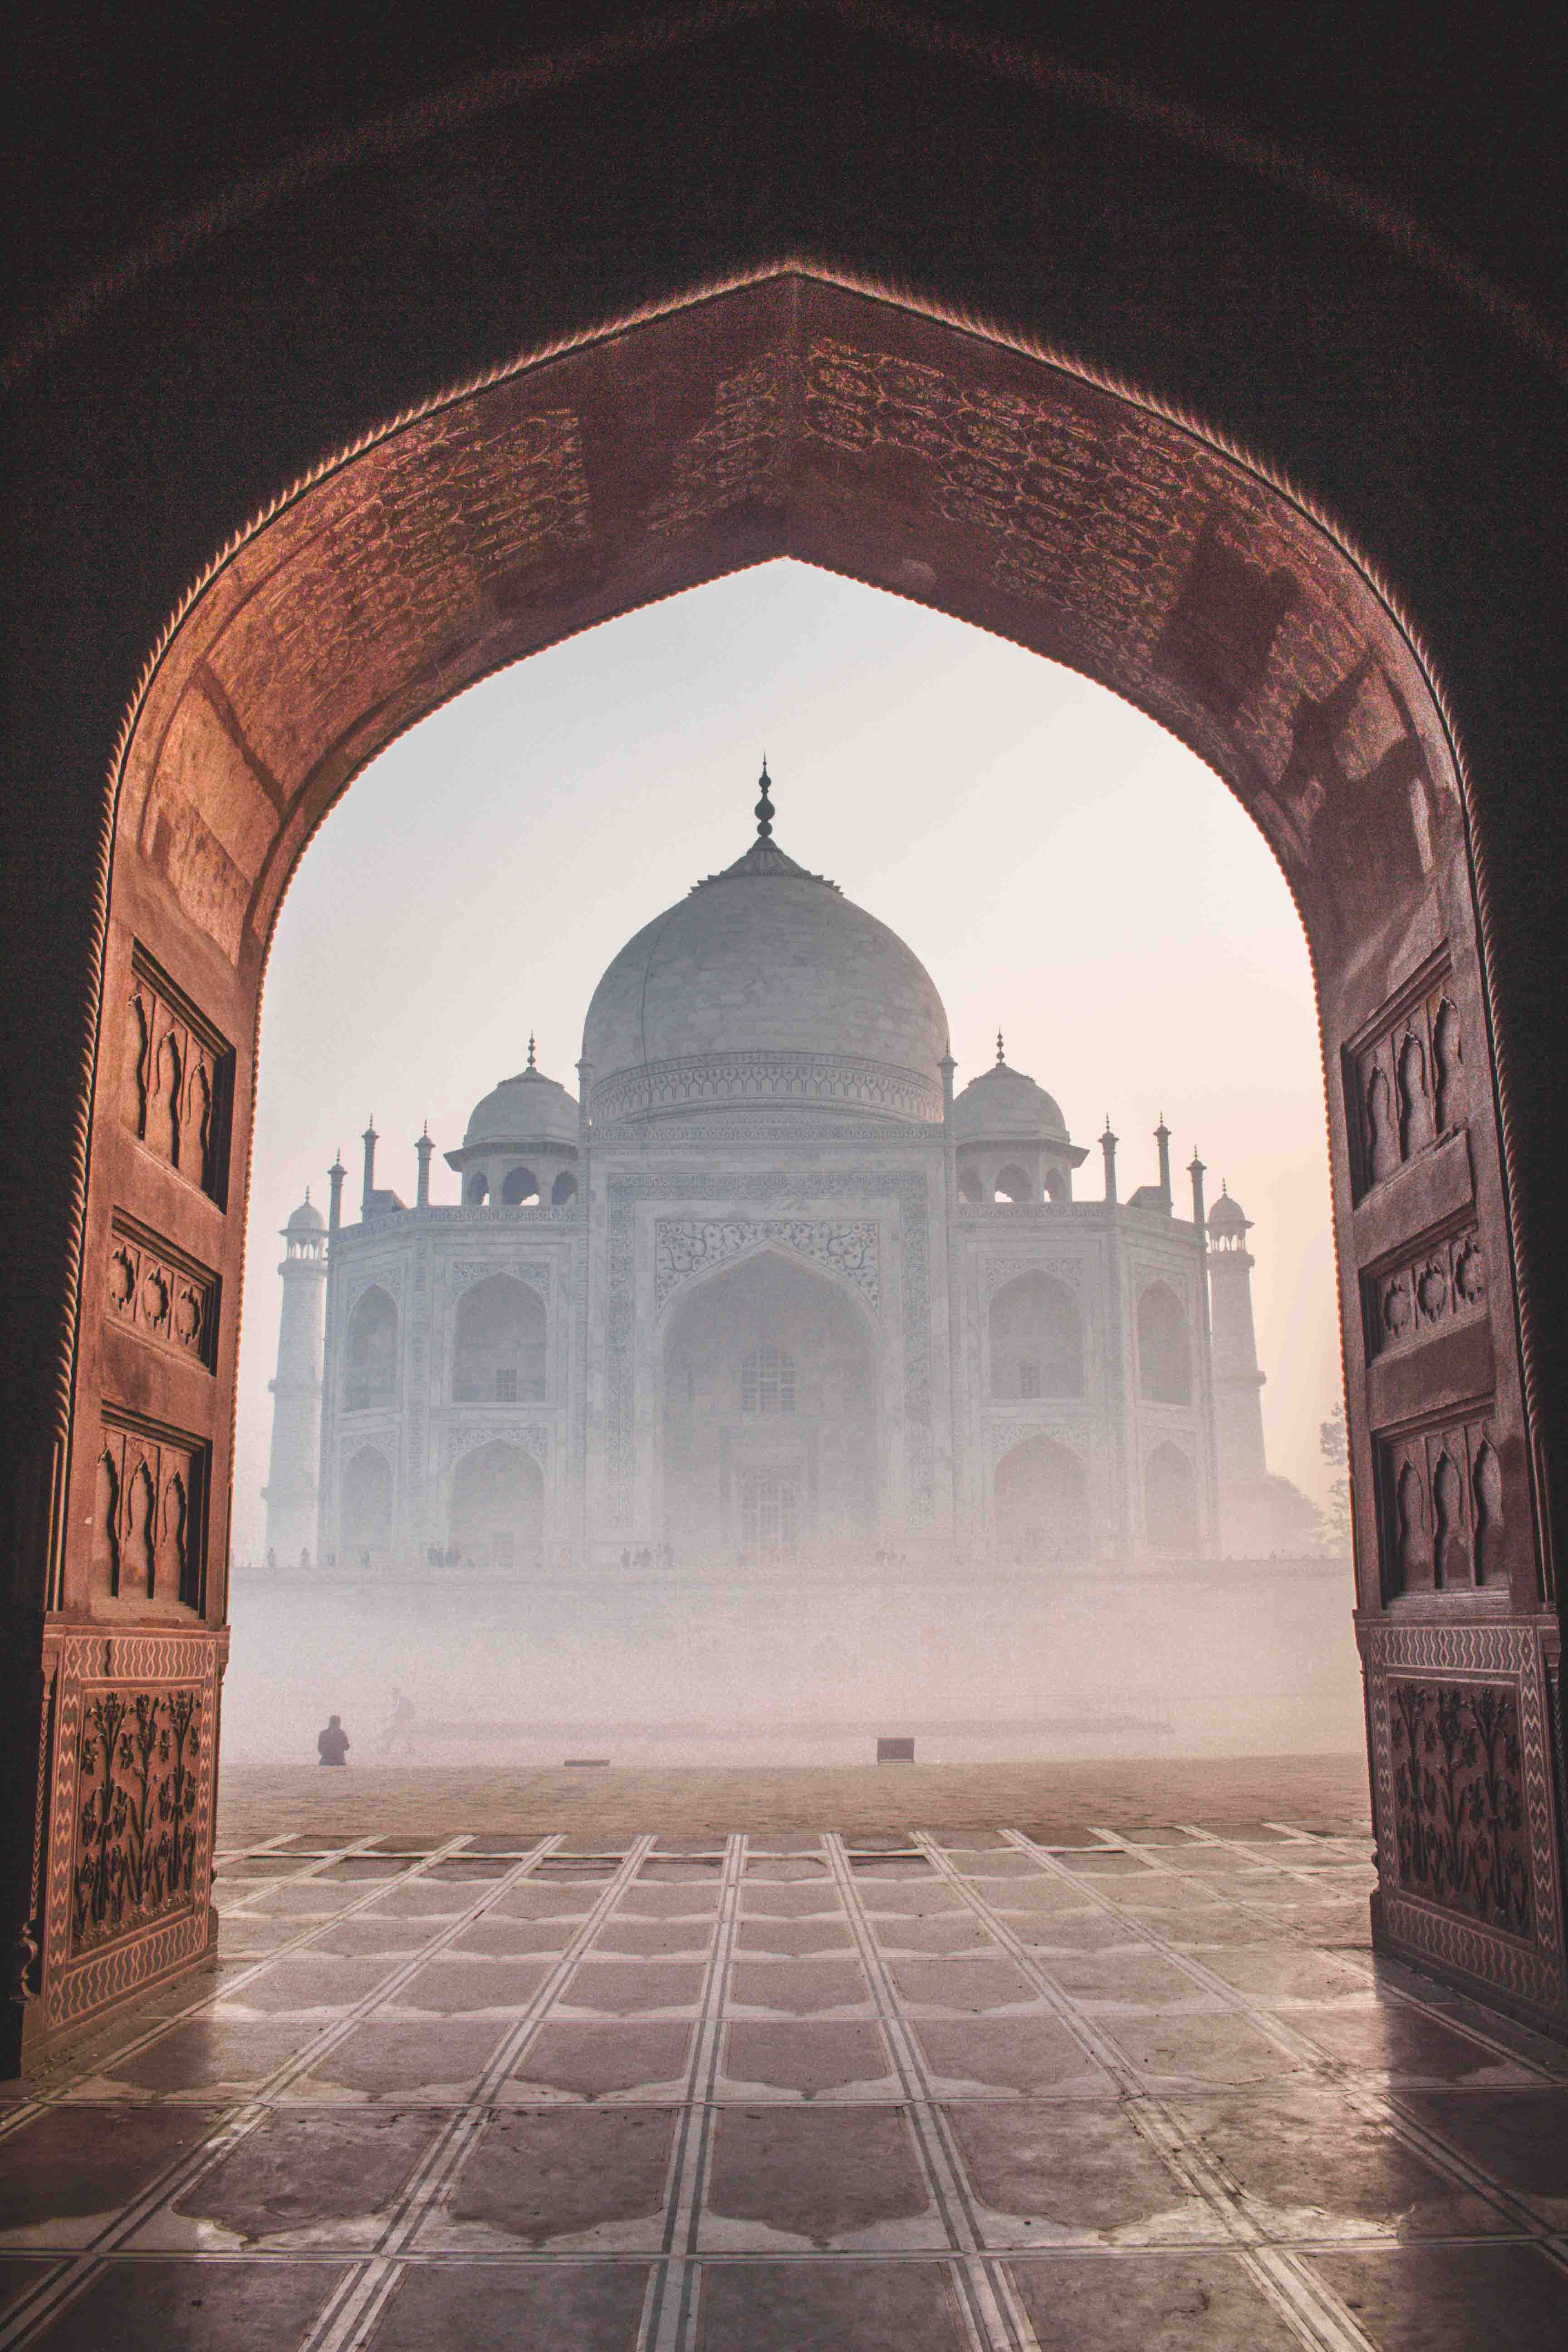 Full Day City tour of Agra with Hotel Pick-up and drop-off